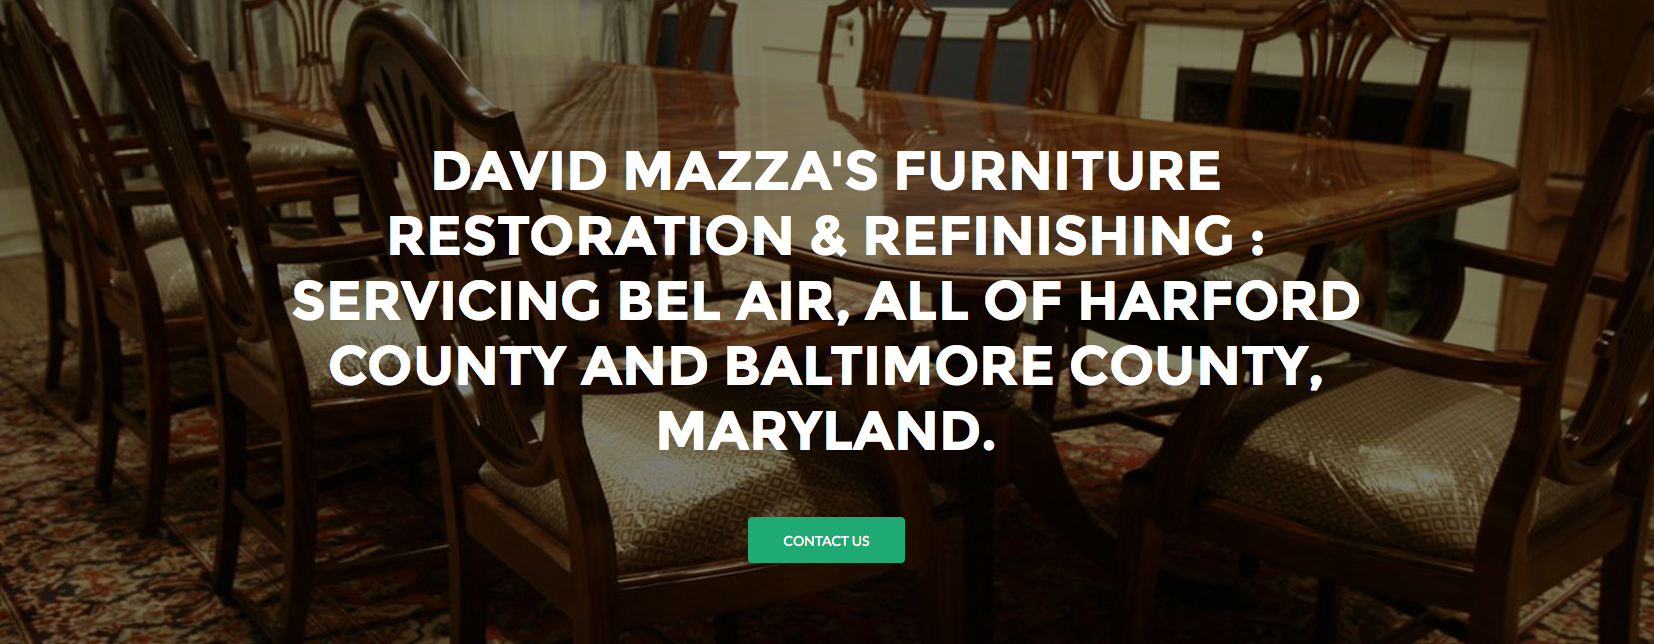 David Mazza's Furniture Restoration Services in Bel Air Maryland, Harford County Maryland, Baltimore County Maryland